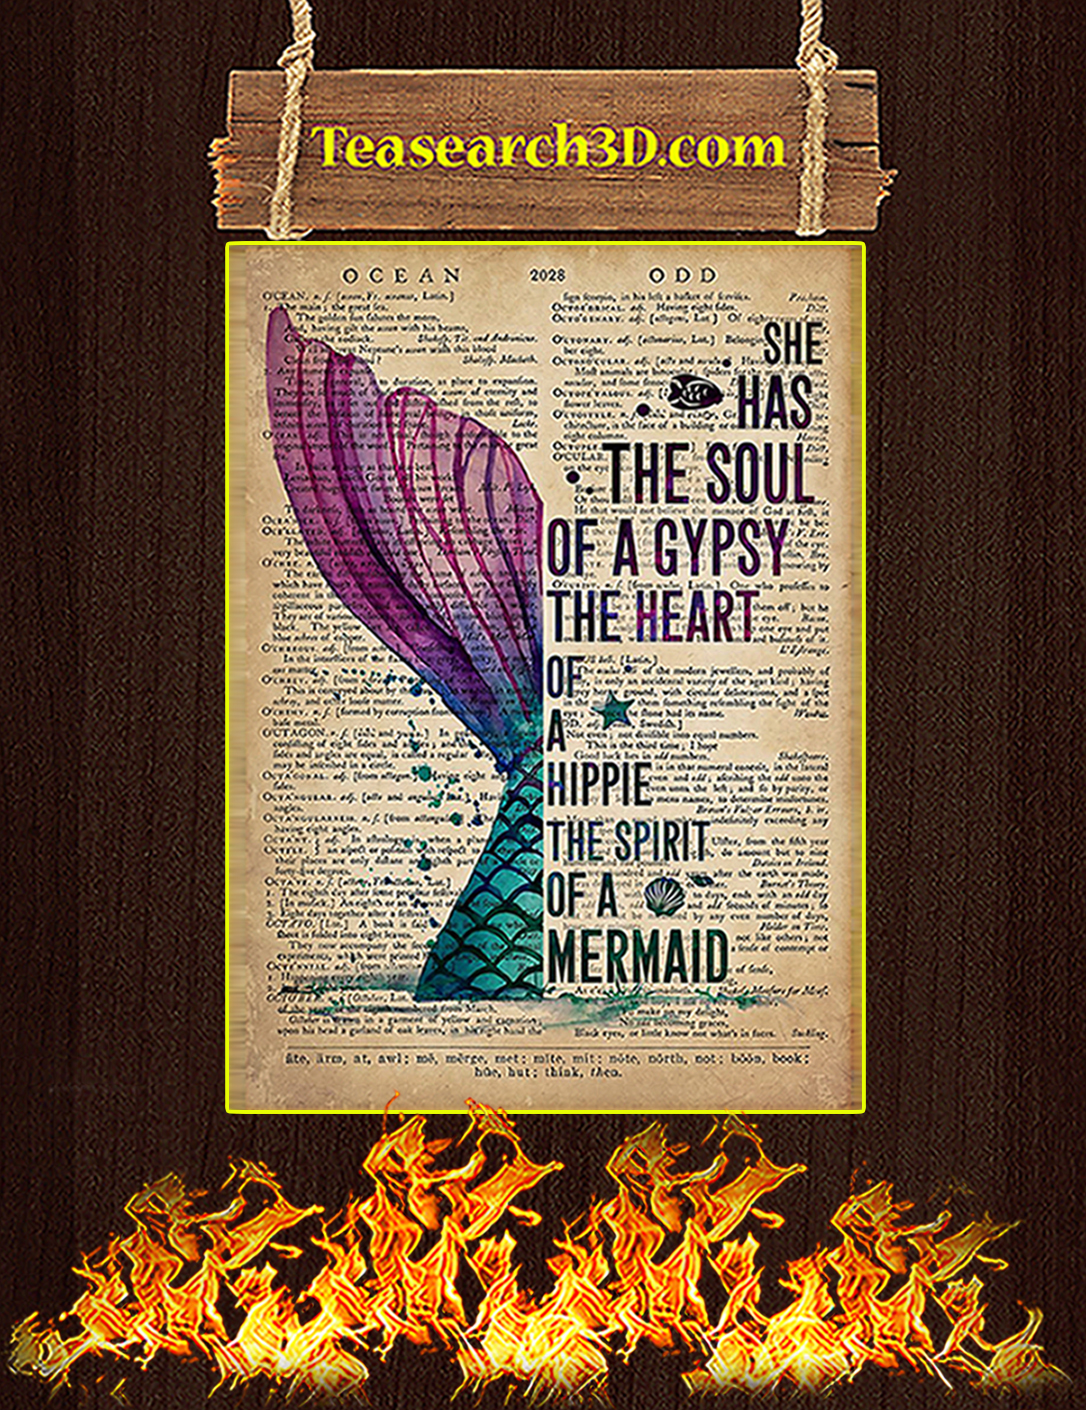 Mermaid She has the soul of a gypsy poster A2